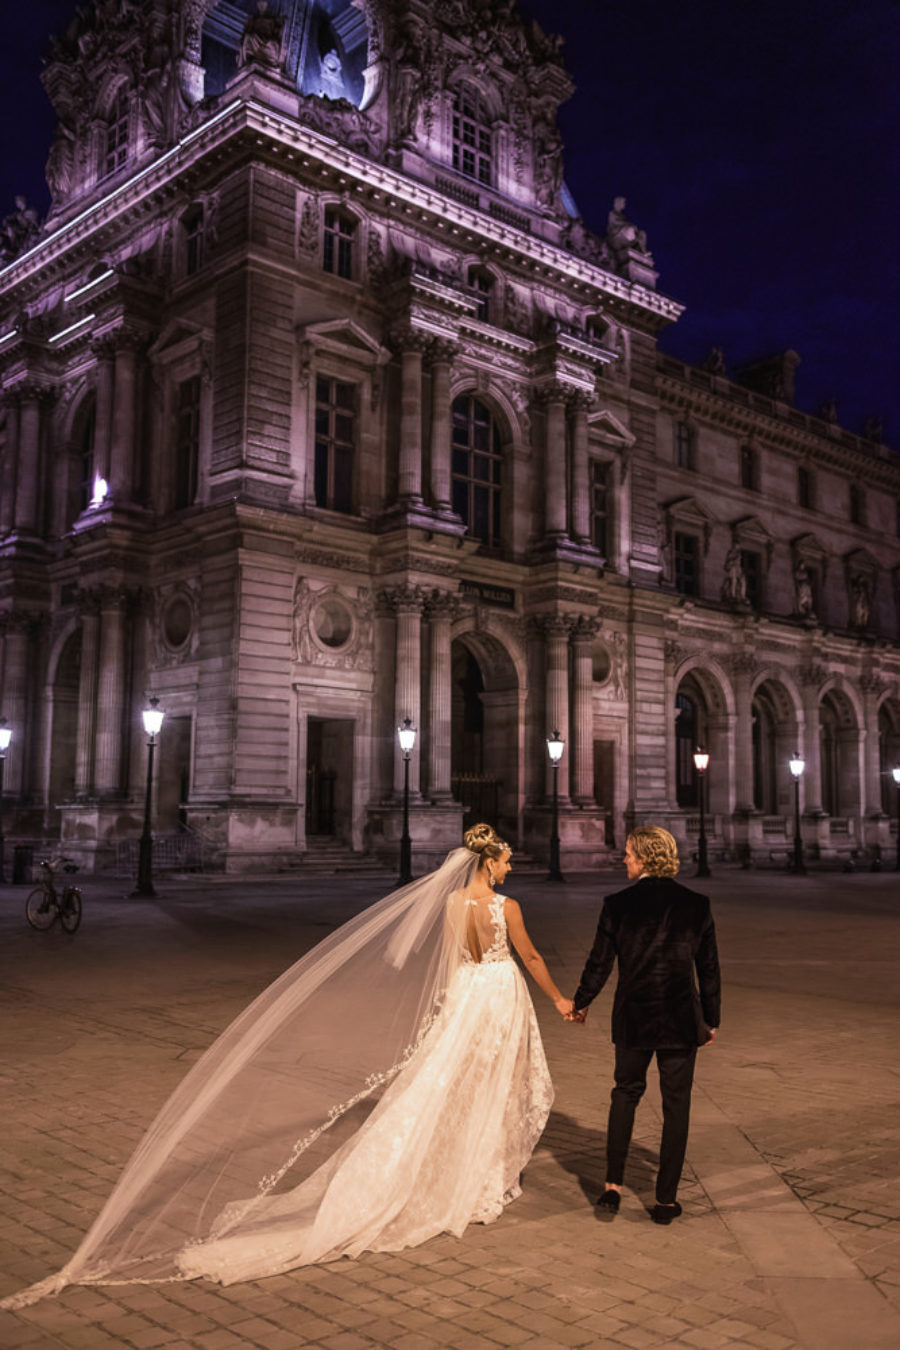 Bride and groom eloping to Paris at night at Louvre Museum